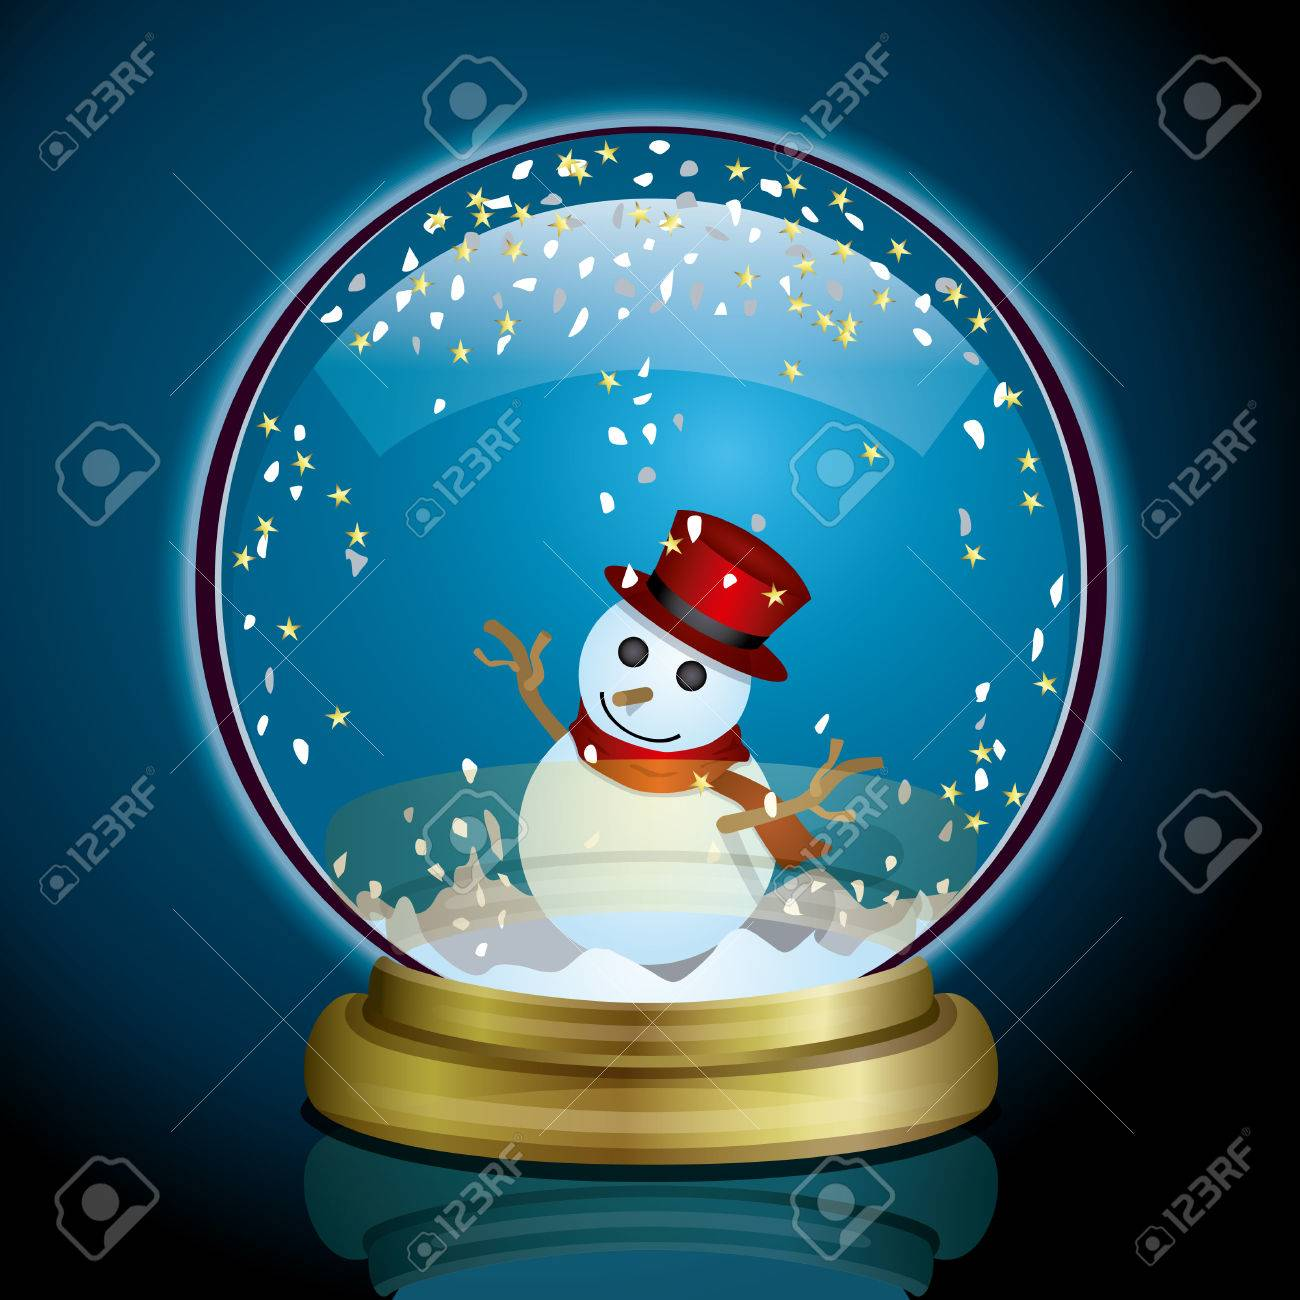 Snow Globe Stock Vector - 6699322